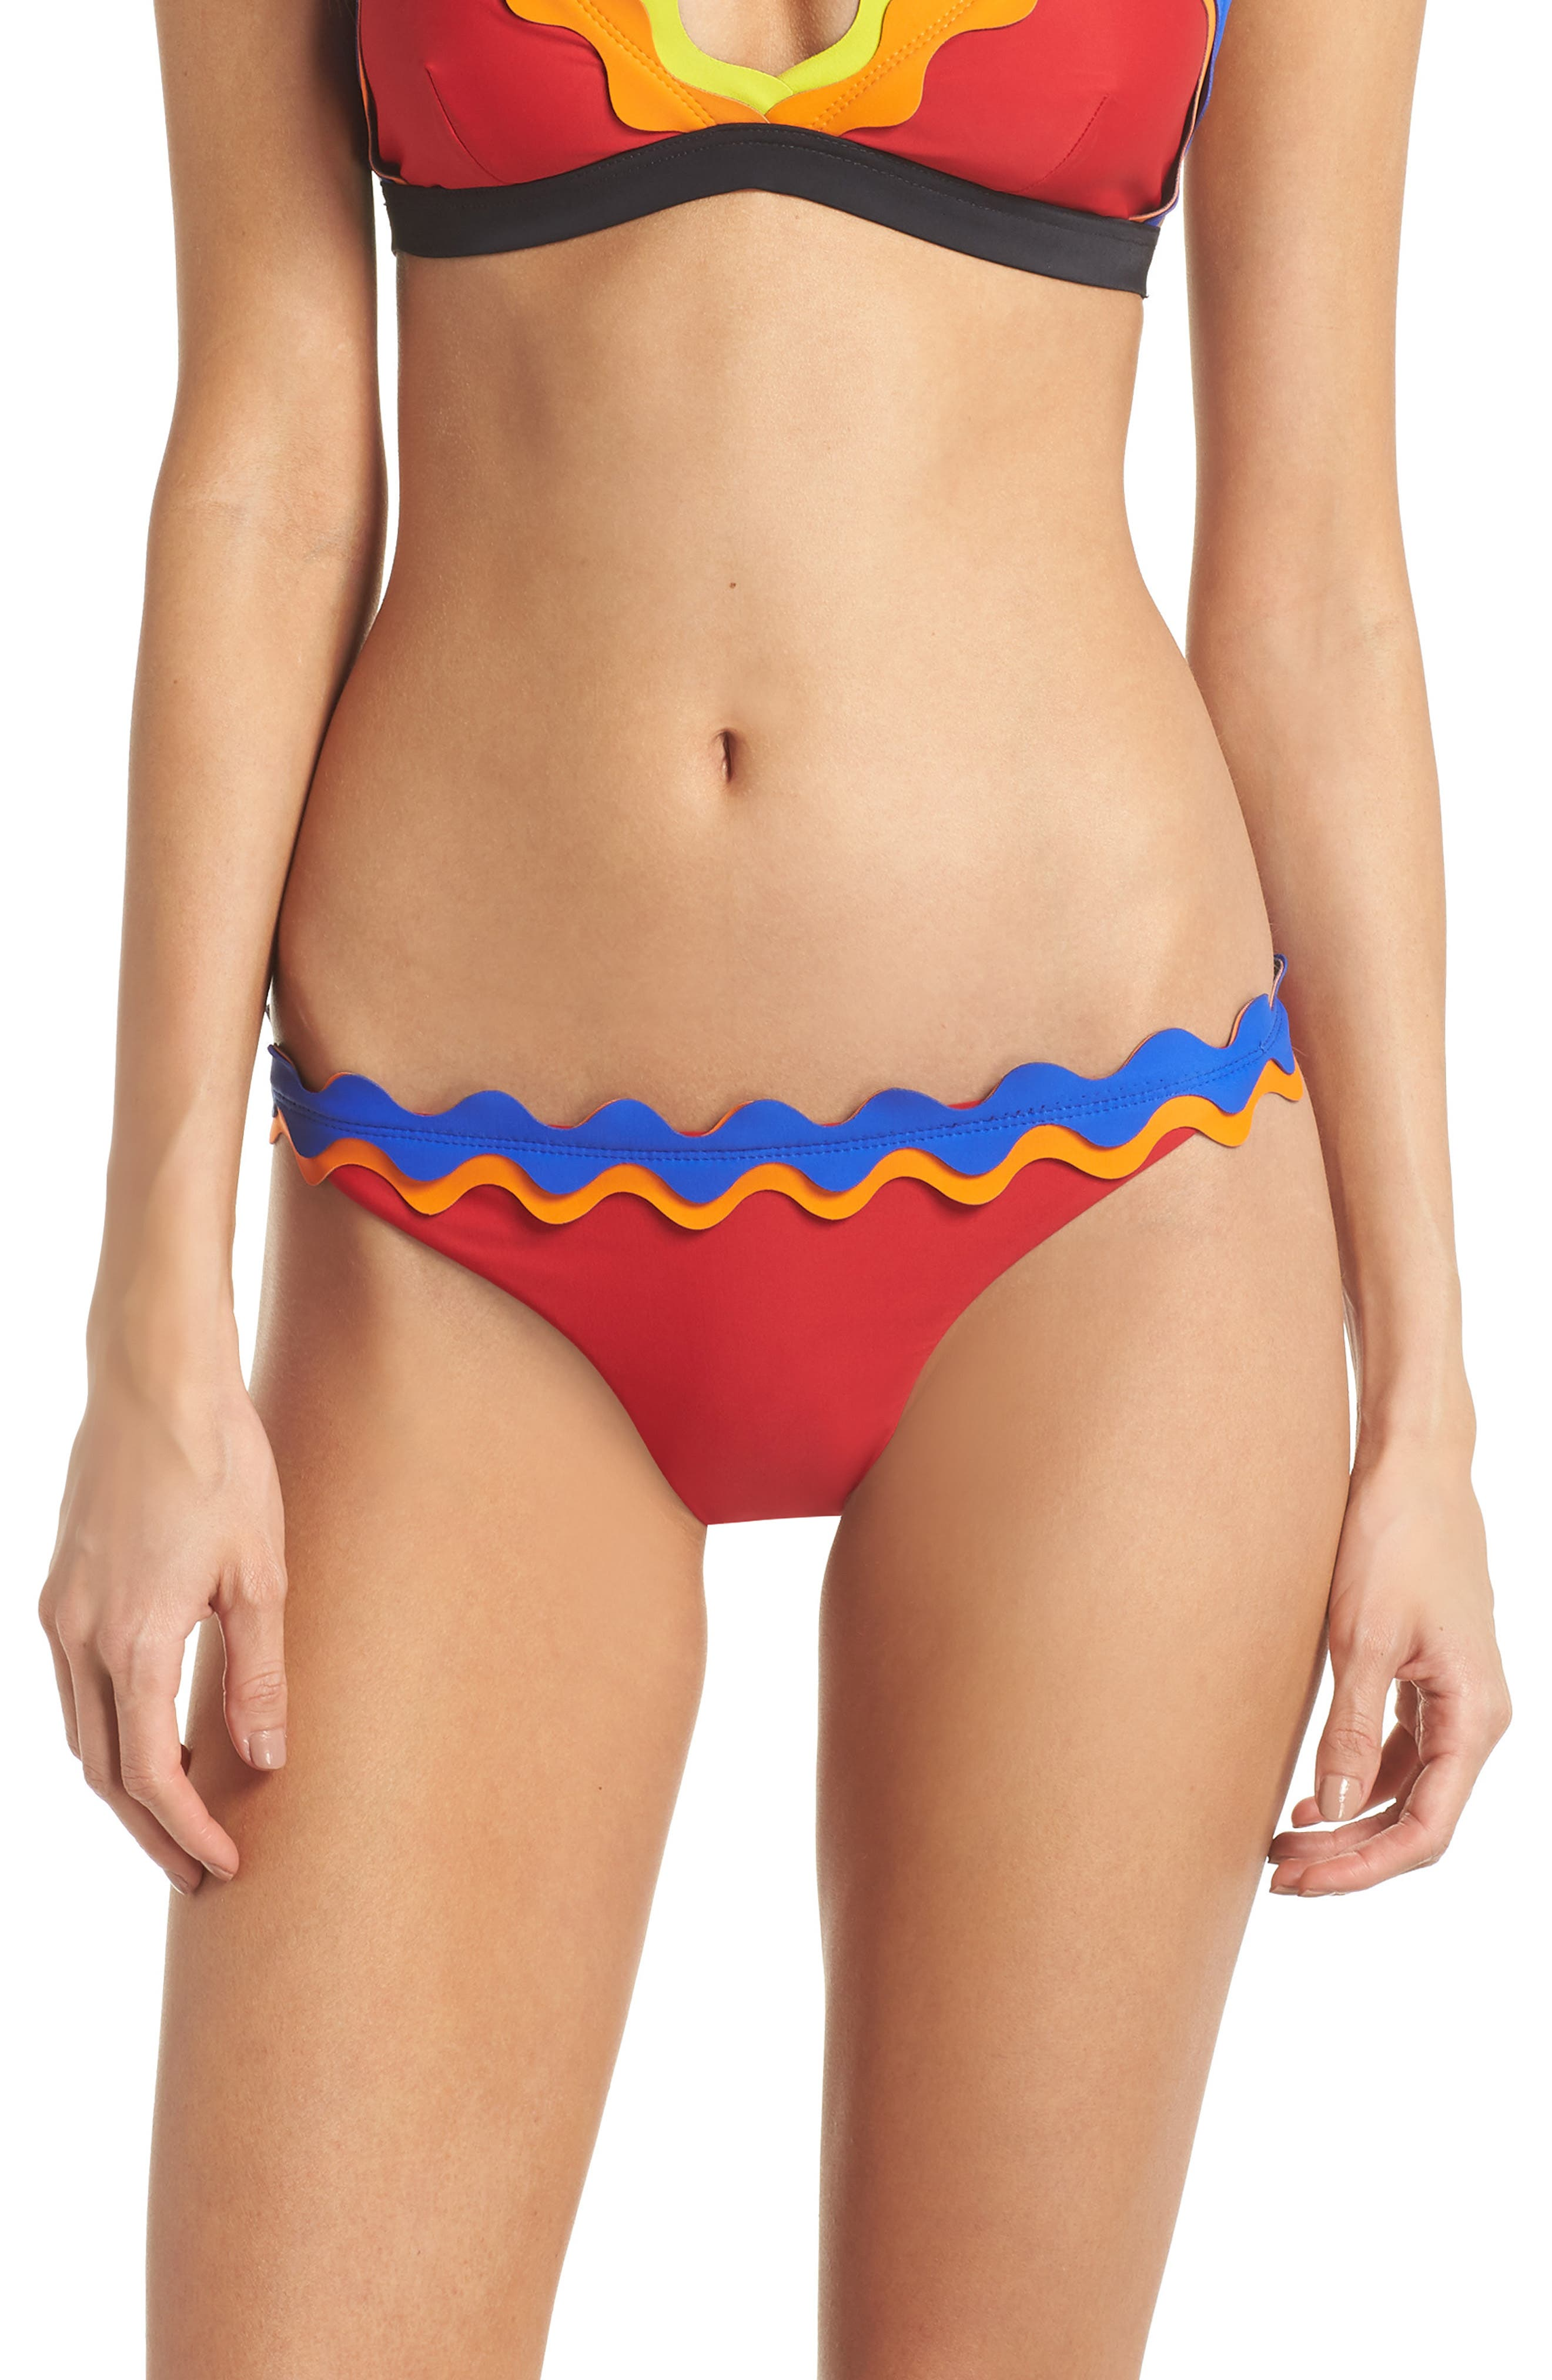 Cackle Bikini Bottoms,                             Main thumbnail 1, color,                             Red